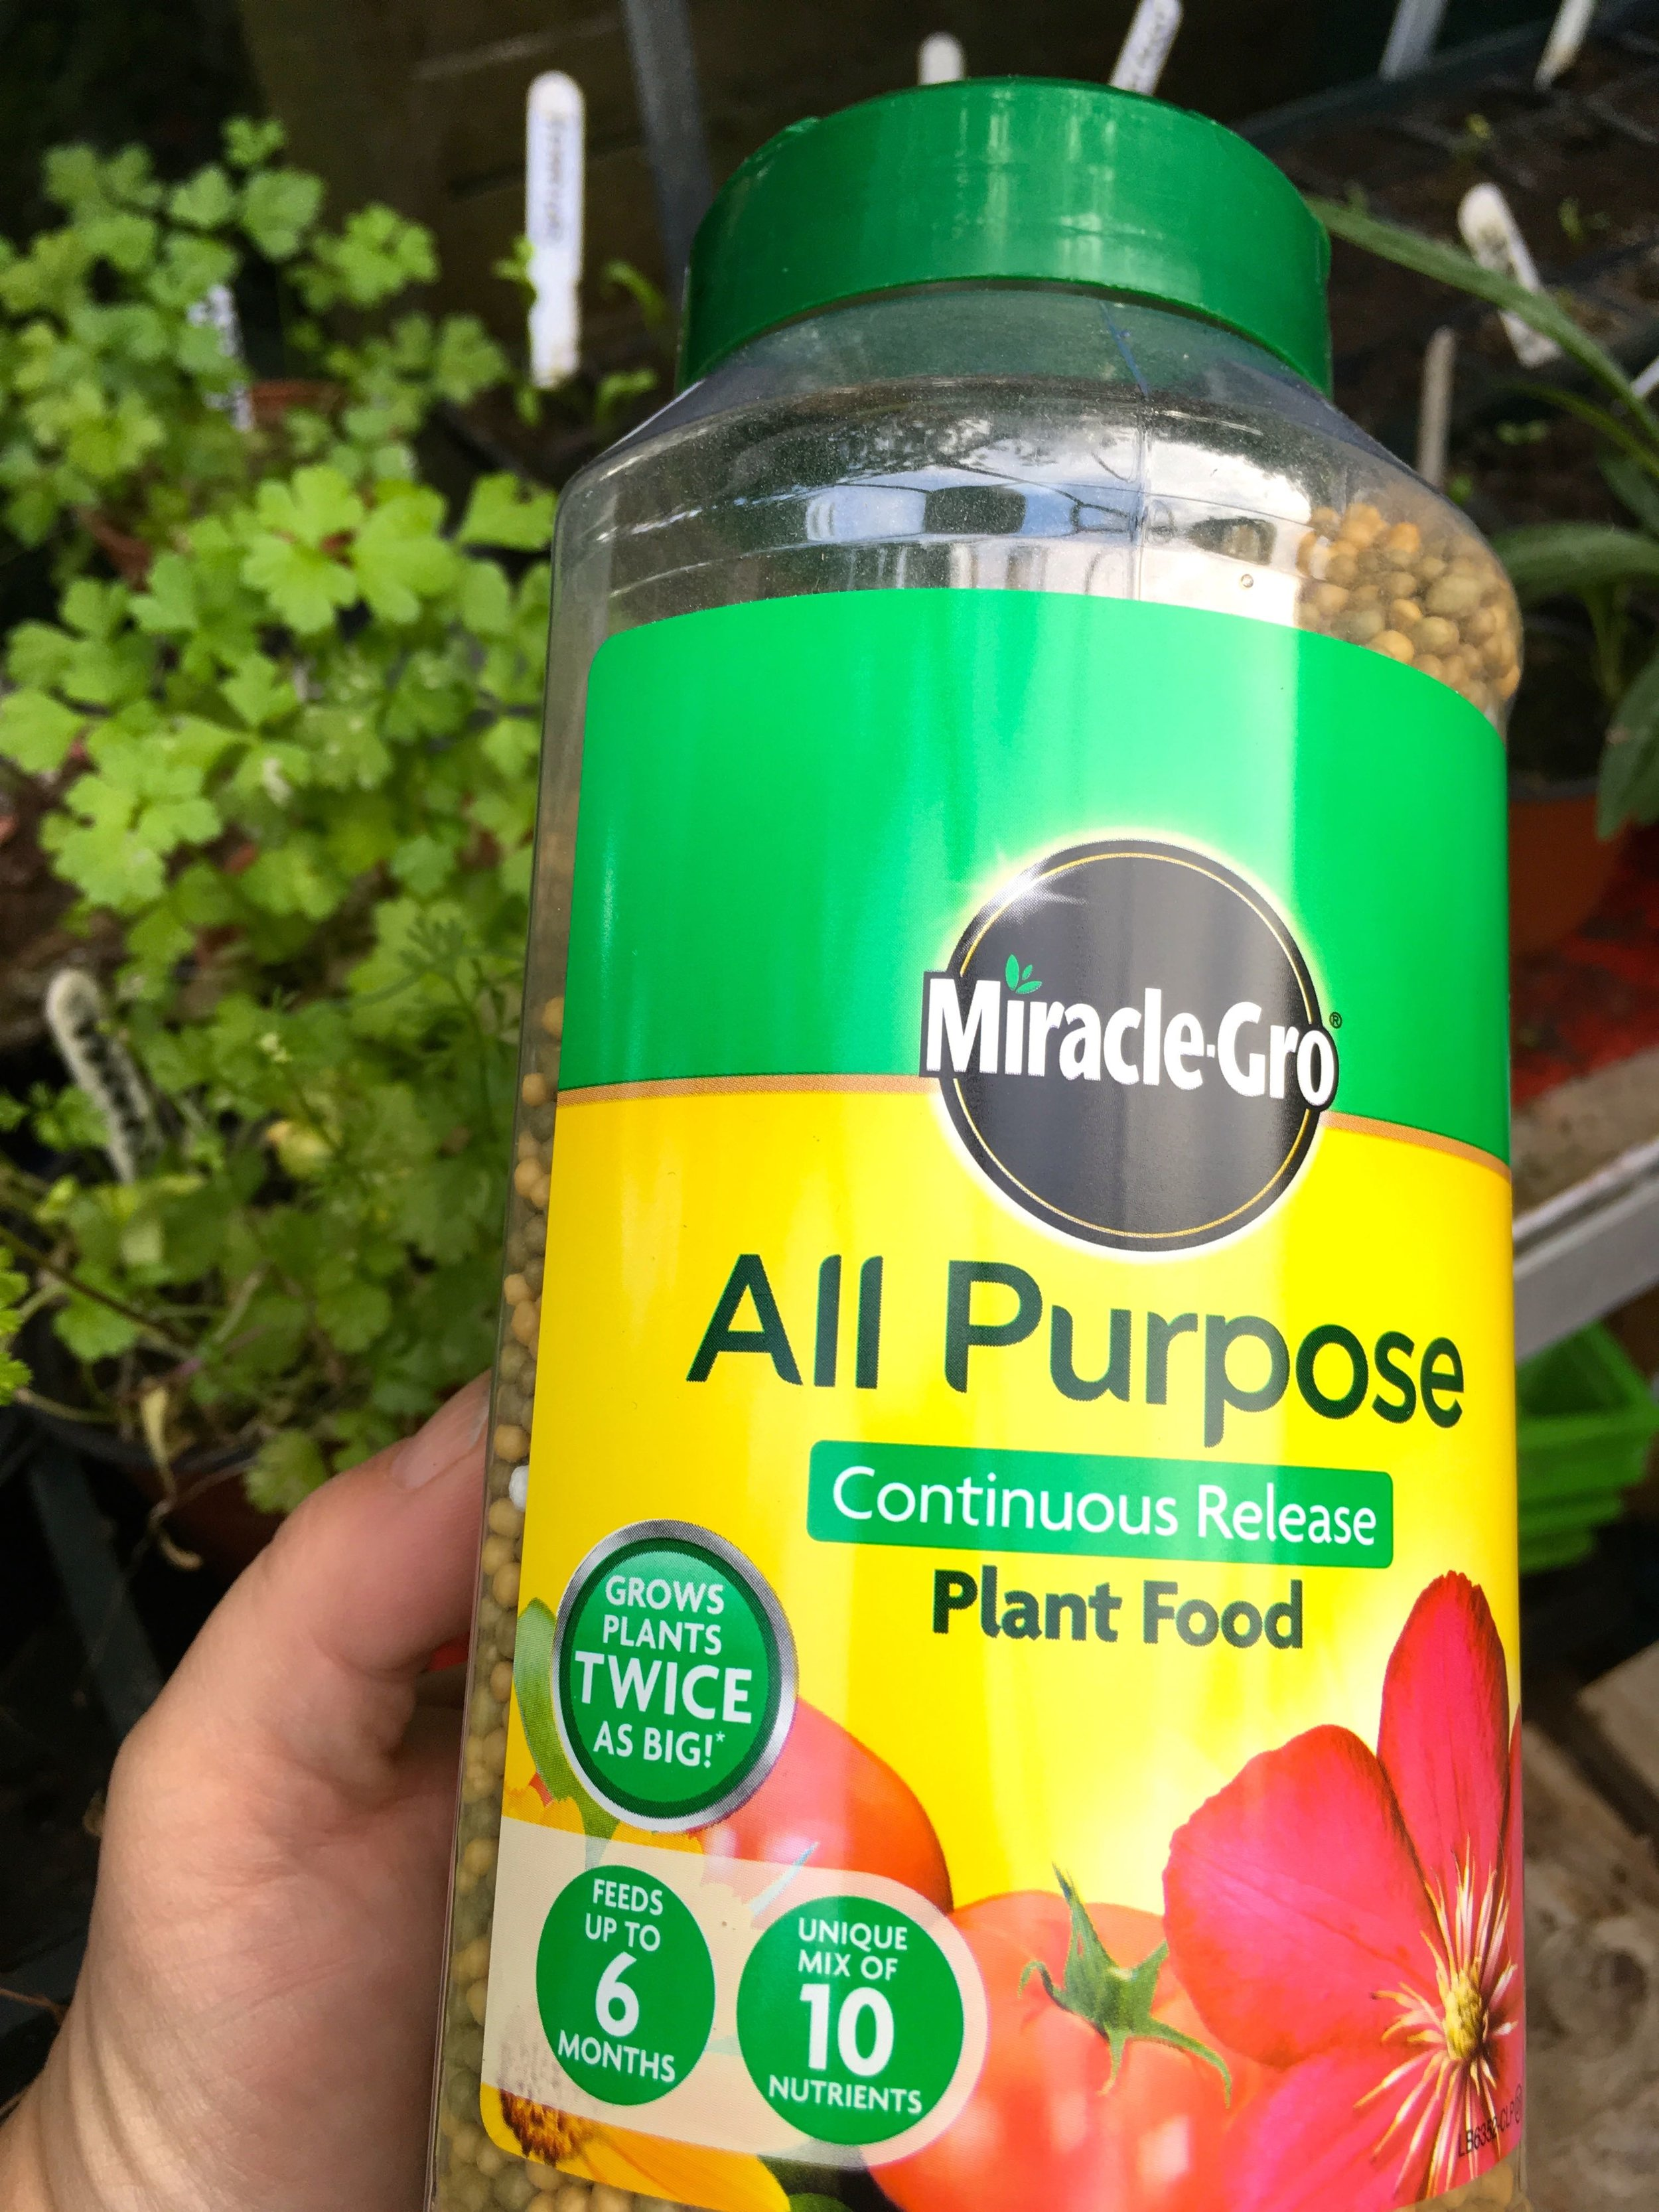 Using Miracle-Gro all purpose plant food in the greenhouse